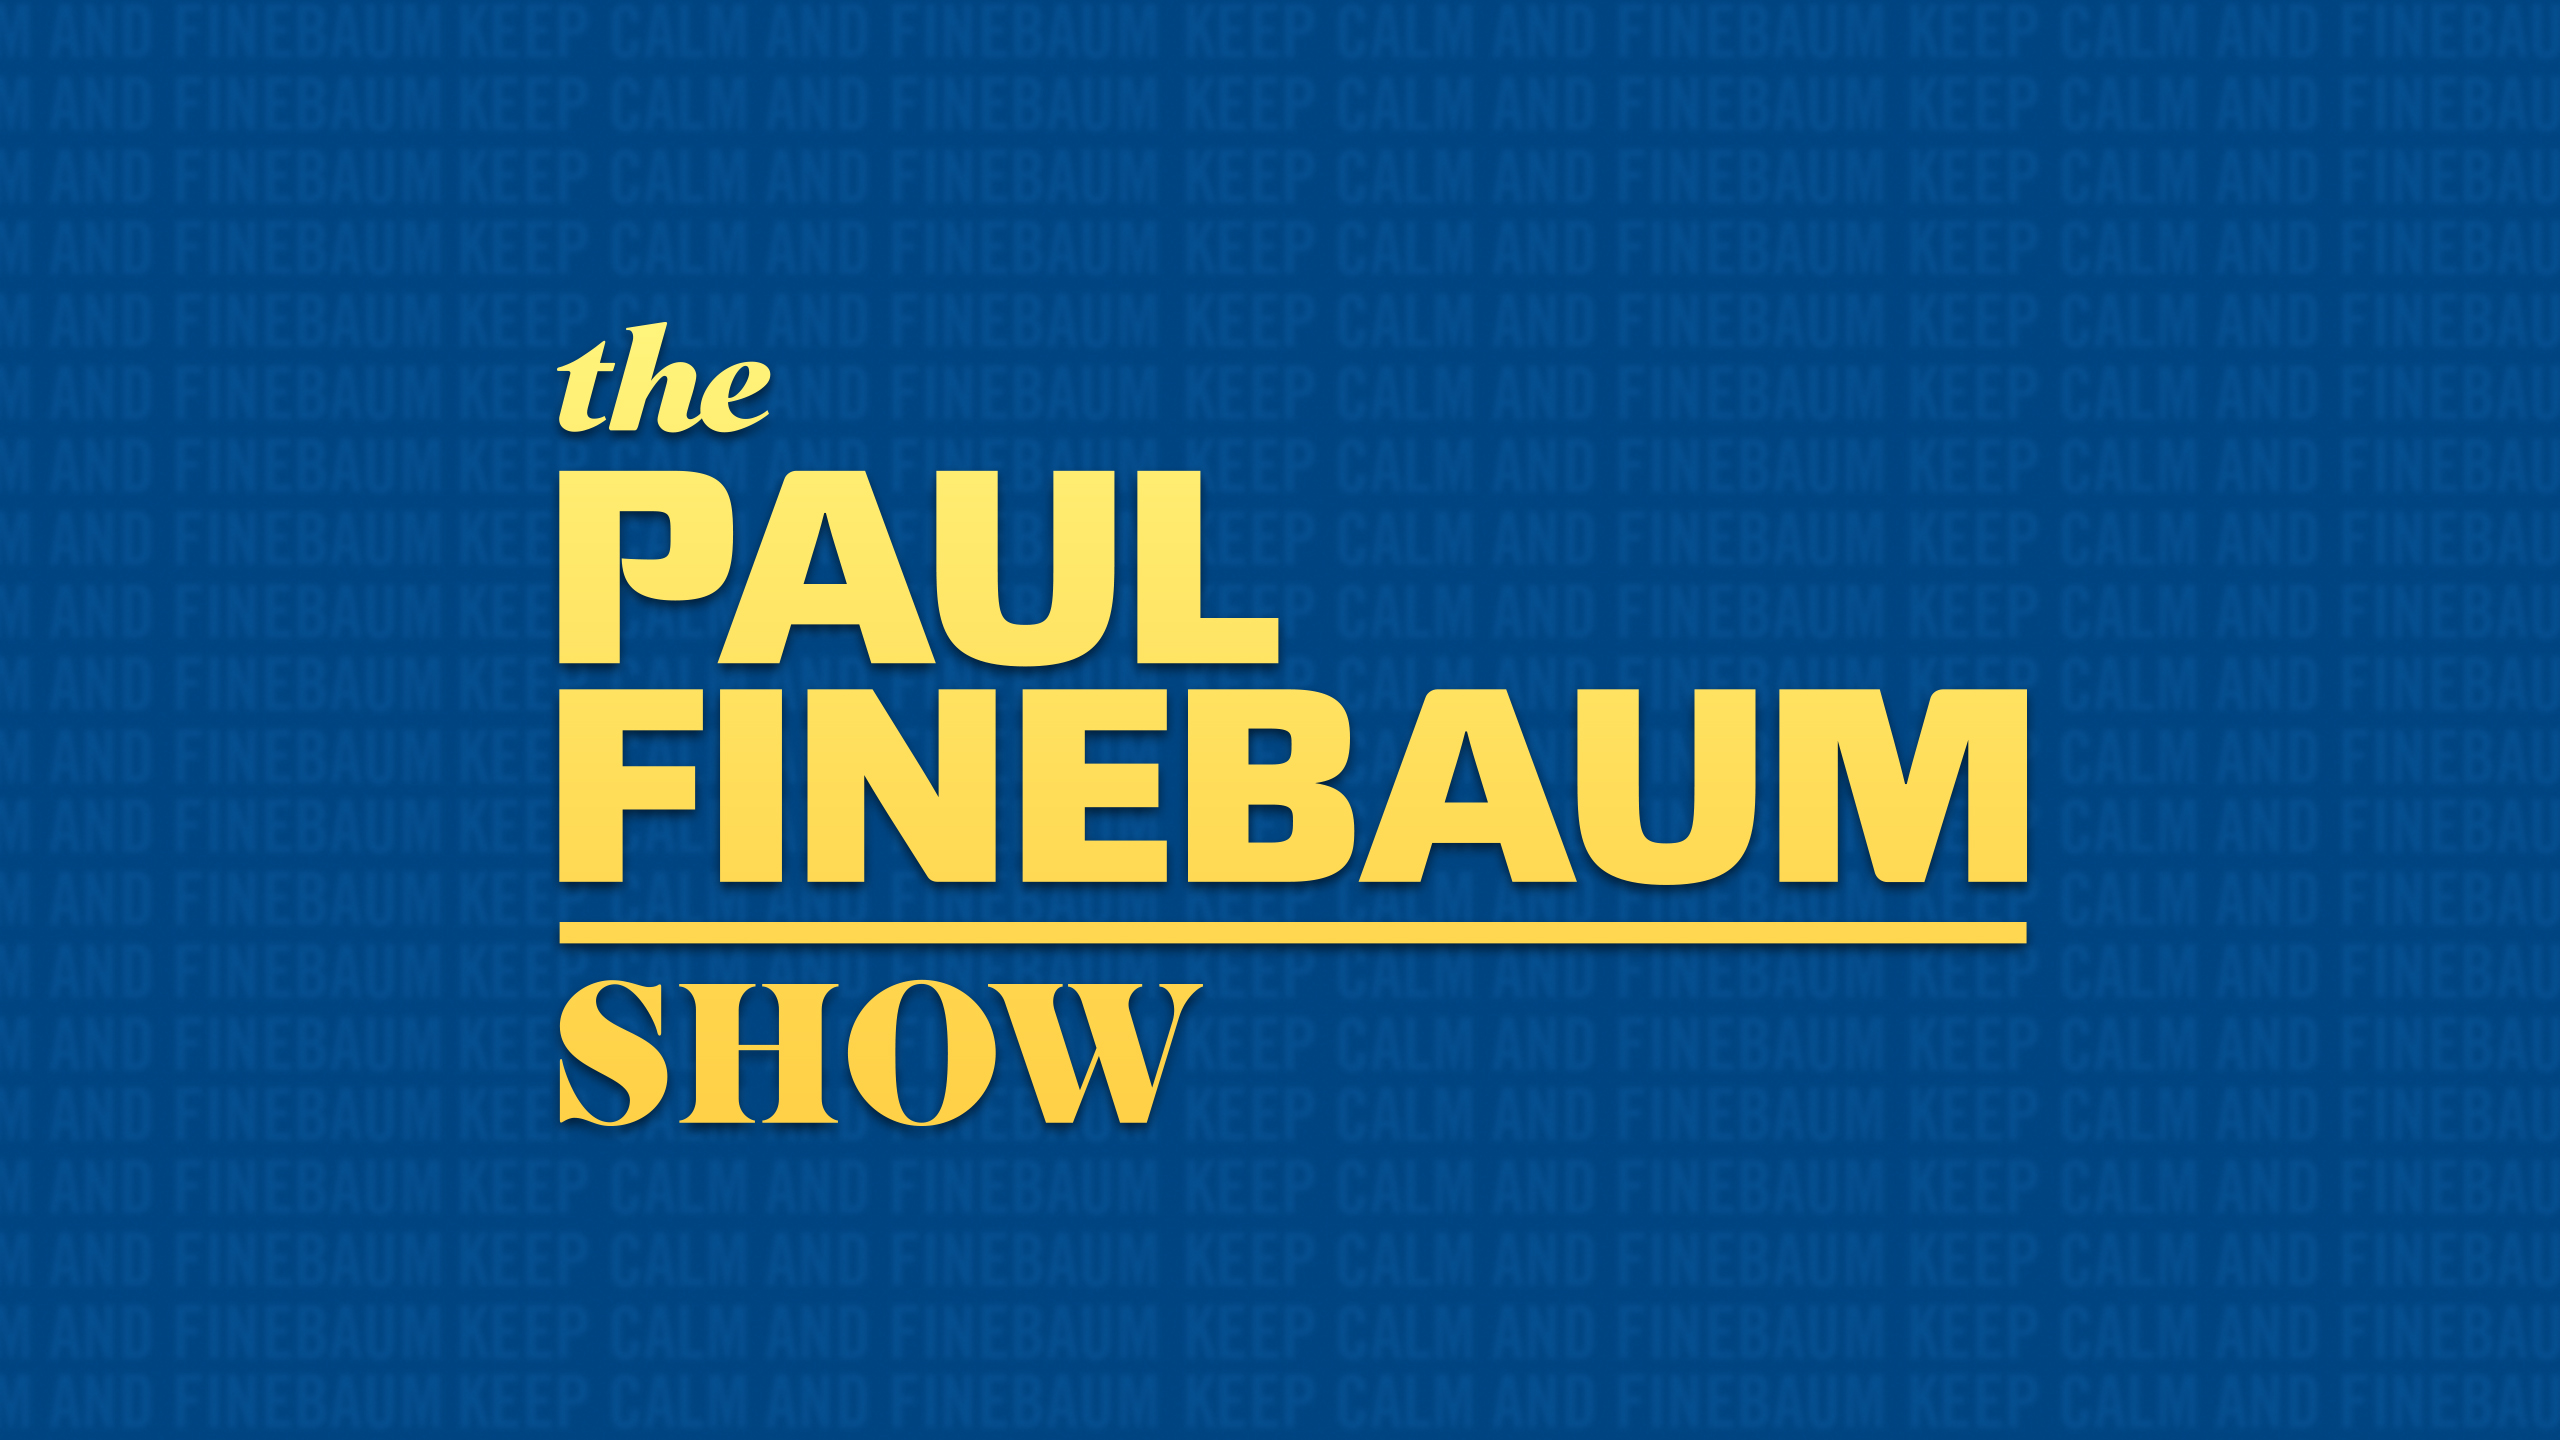 Wed, 9/19 - The Paul Finebaum Show